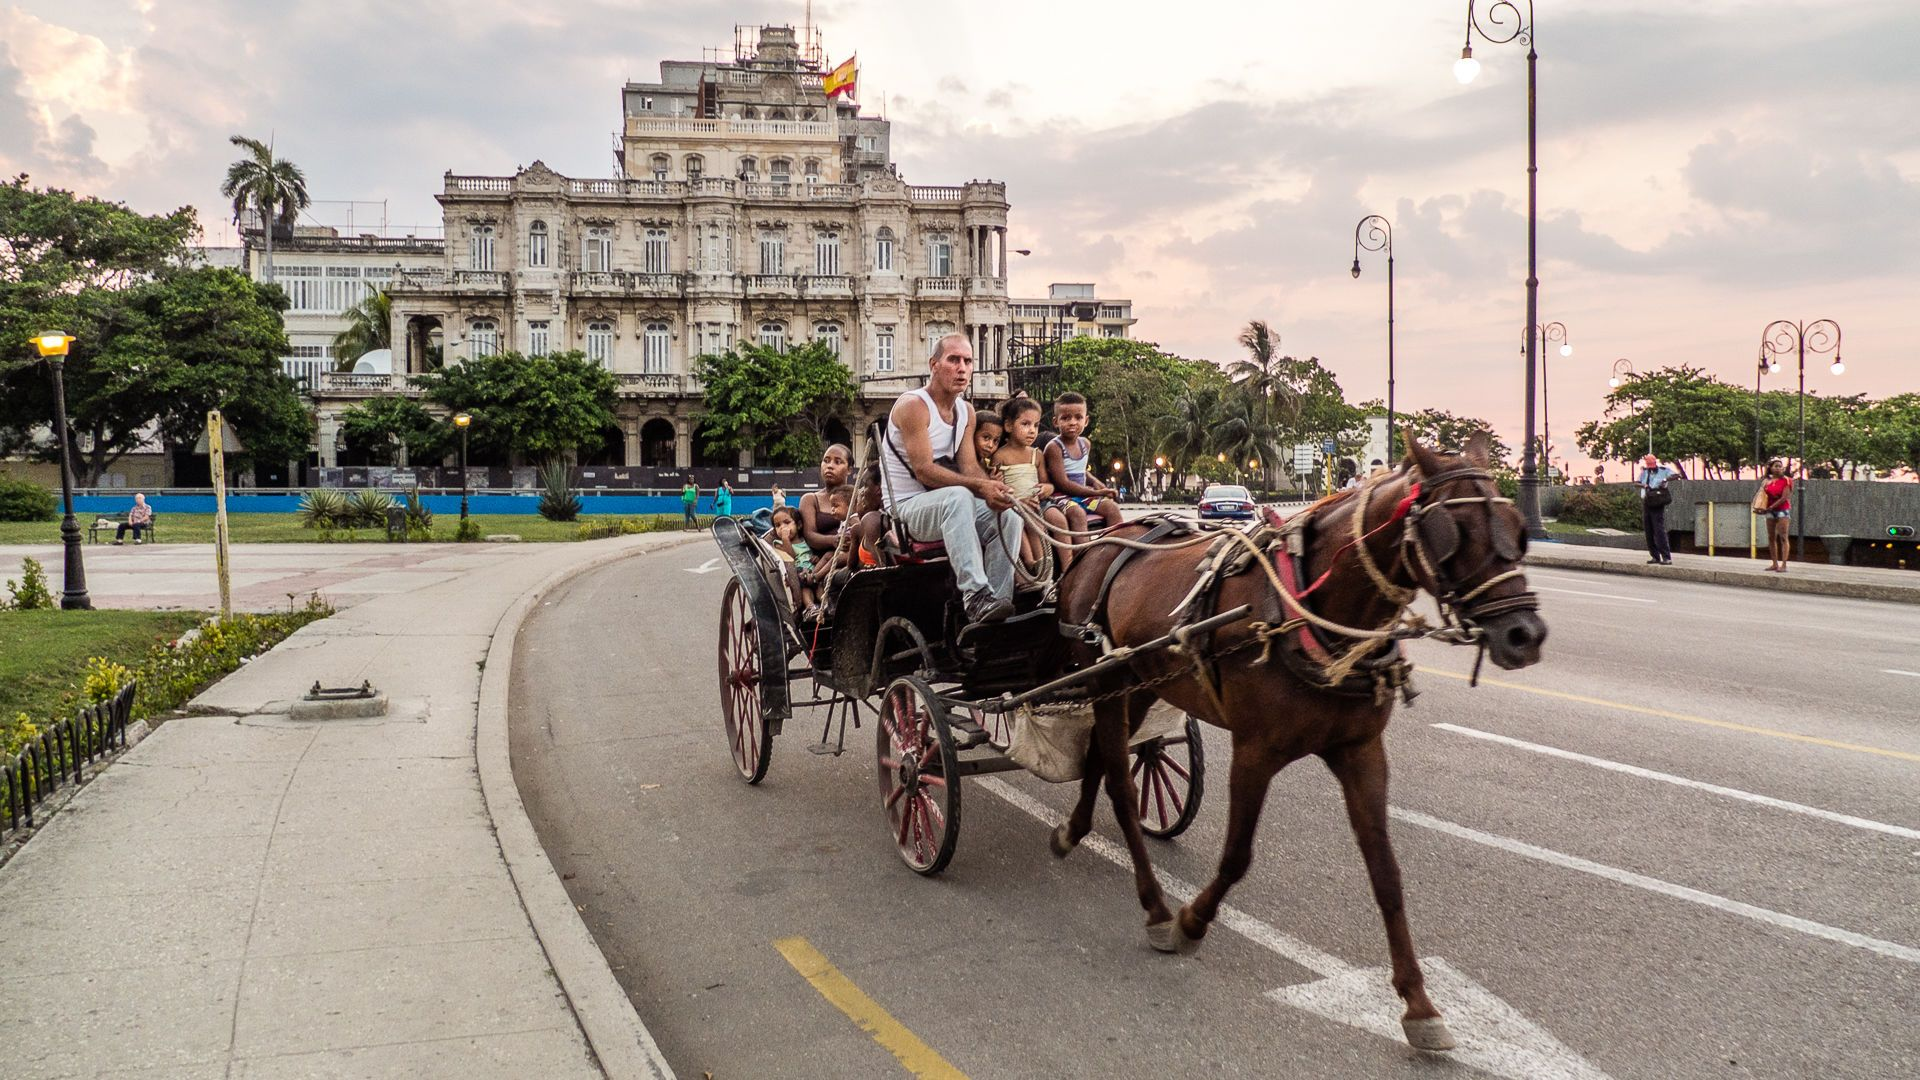 Horse Carriage in the Street of Old Havana, Cuba